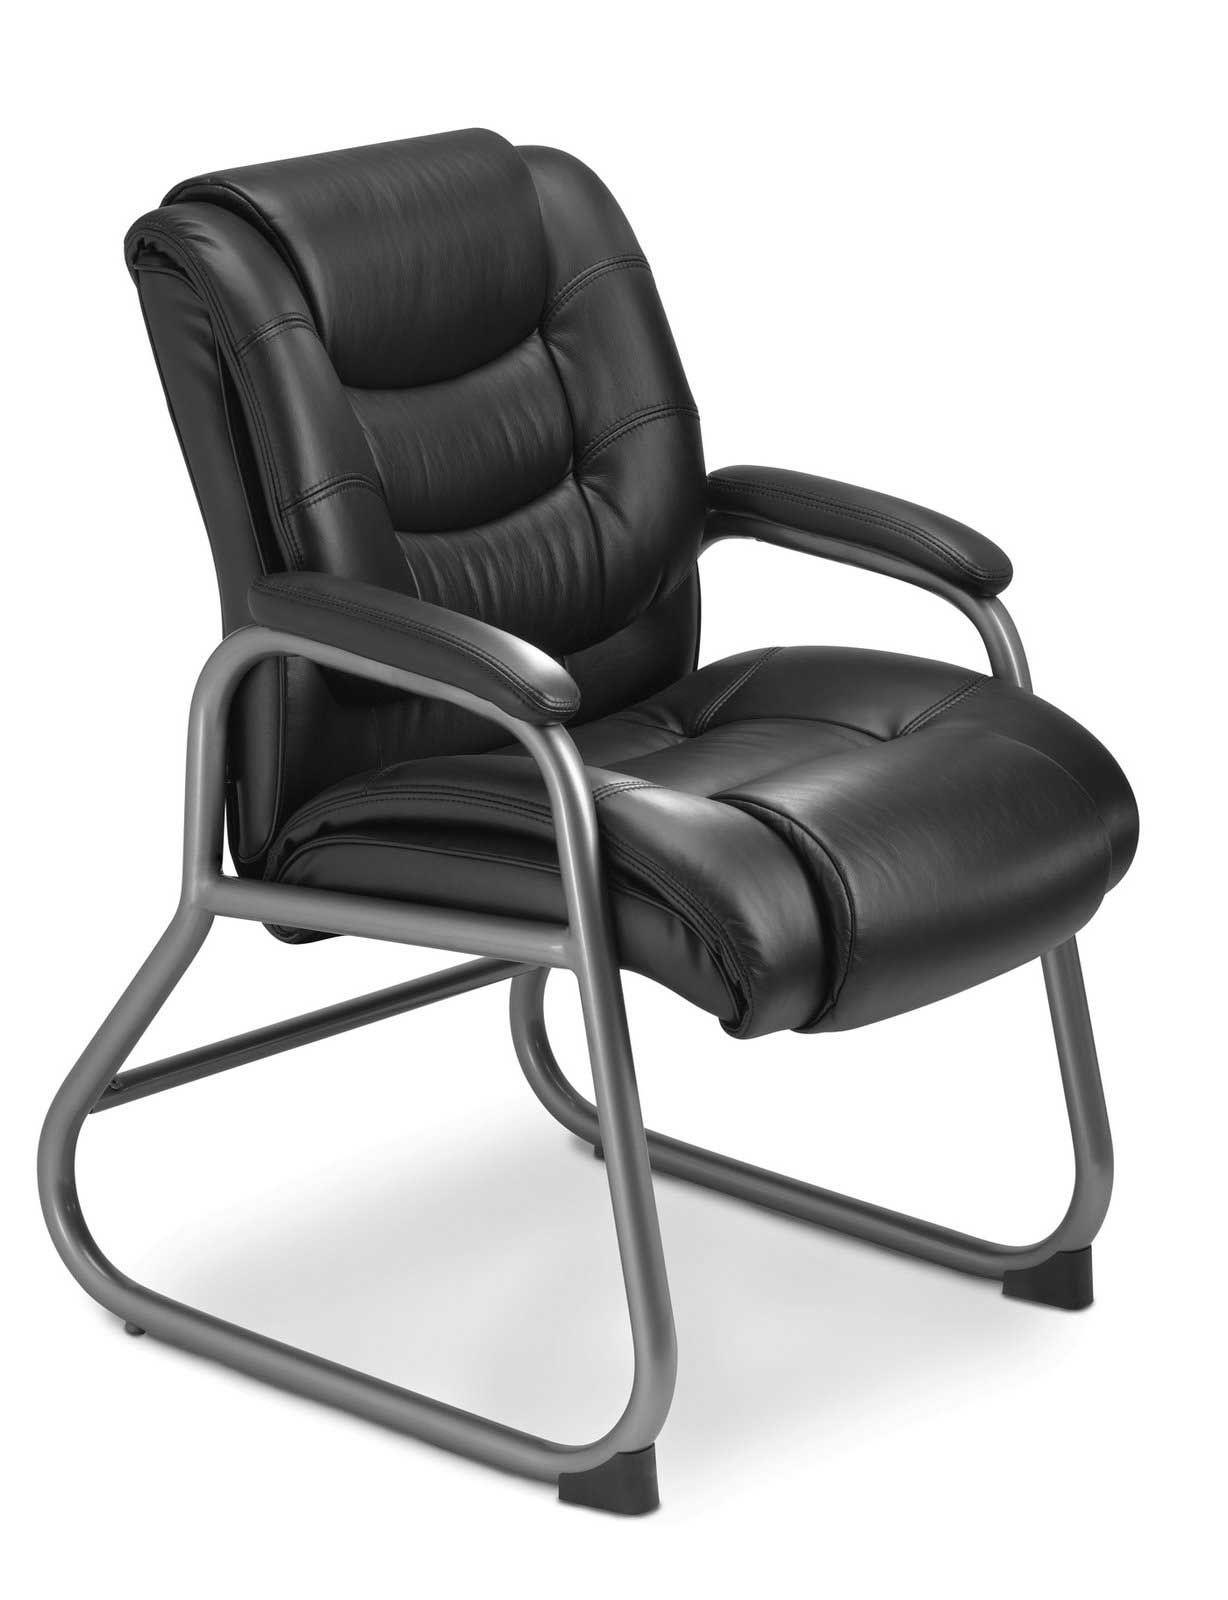 Sit On Comfortable Computer Chairs For Longer Hours Darbylanefurniture Com In 2020 Comfortable Computer Chair Desk Chair Comfy Comfortable Chairs For Bedroom